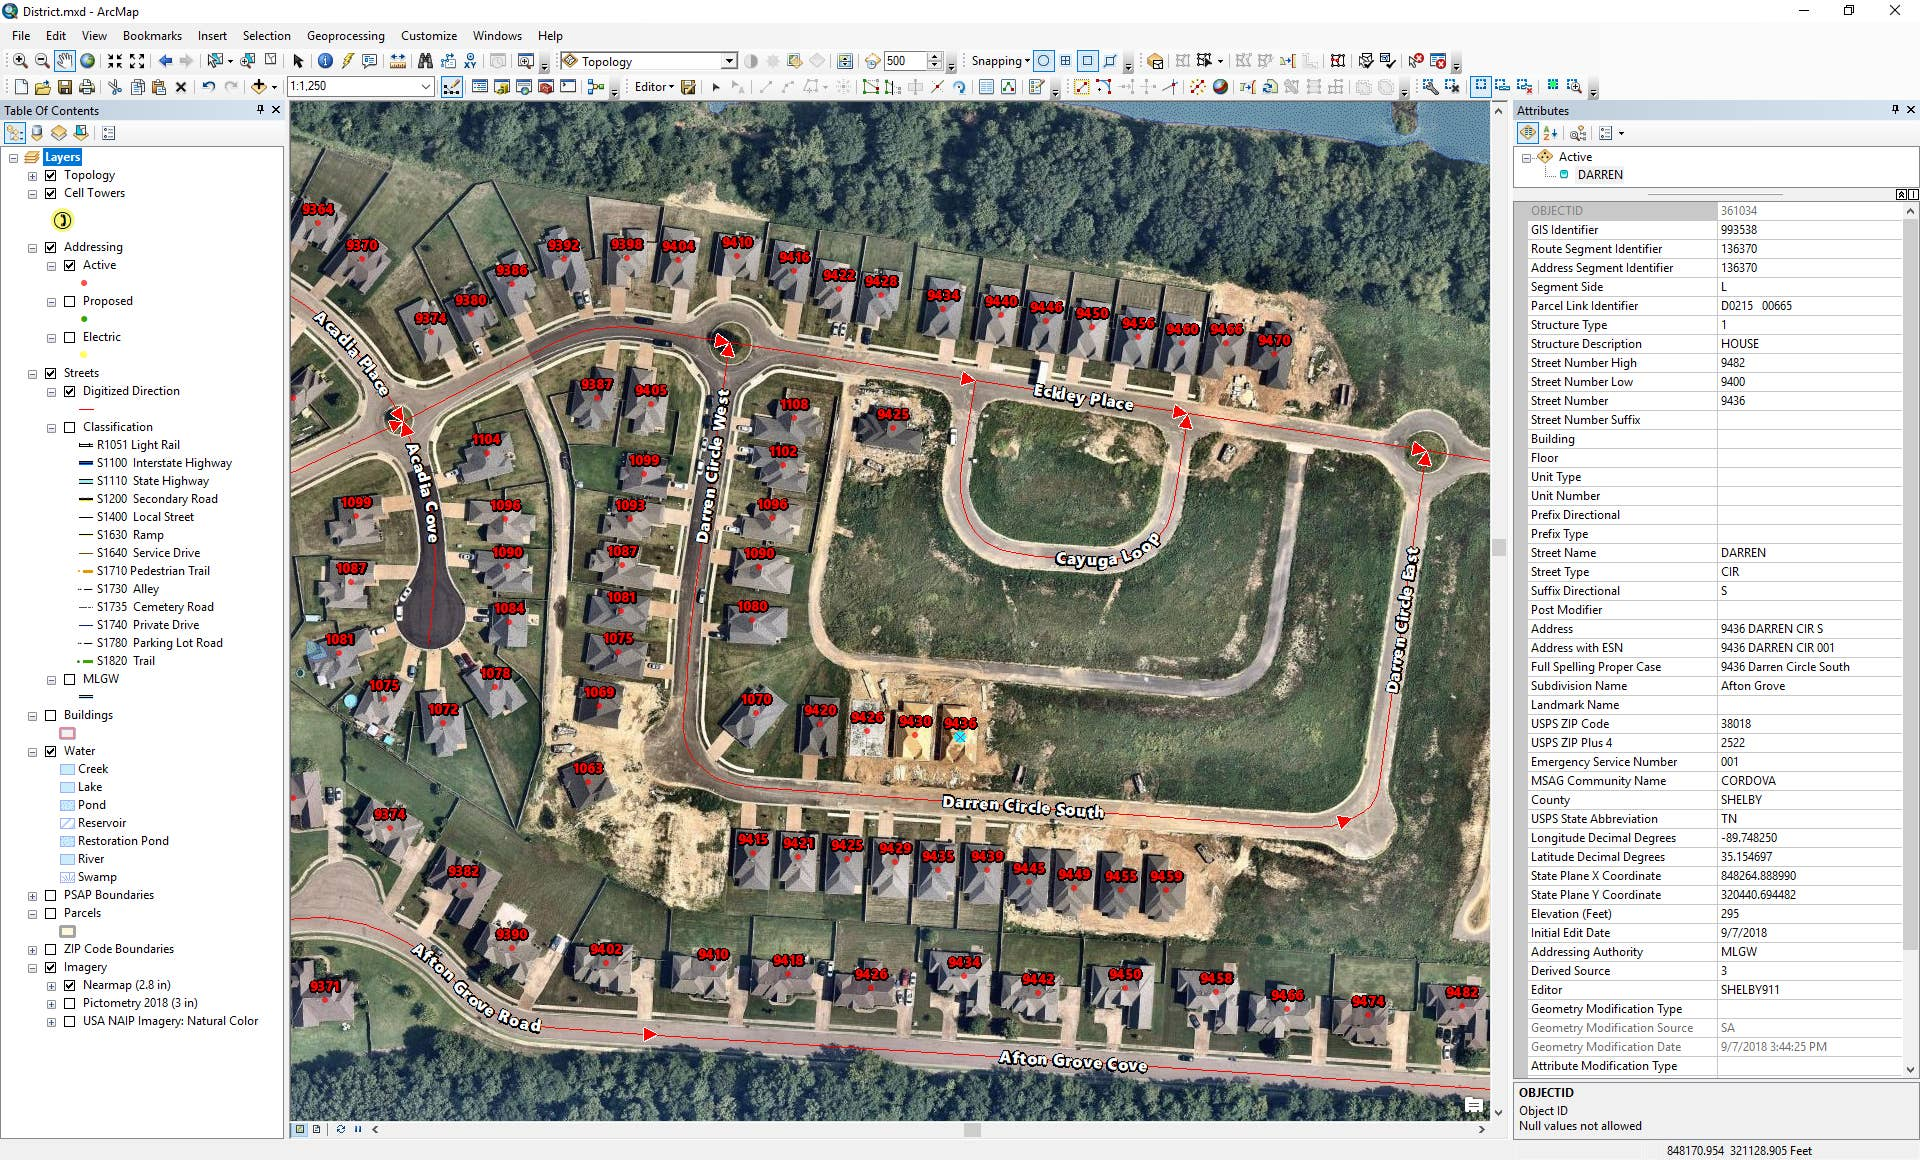 Orthographic aerial maps in Esri ArcMap showing emergency management location data